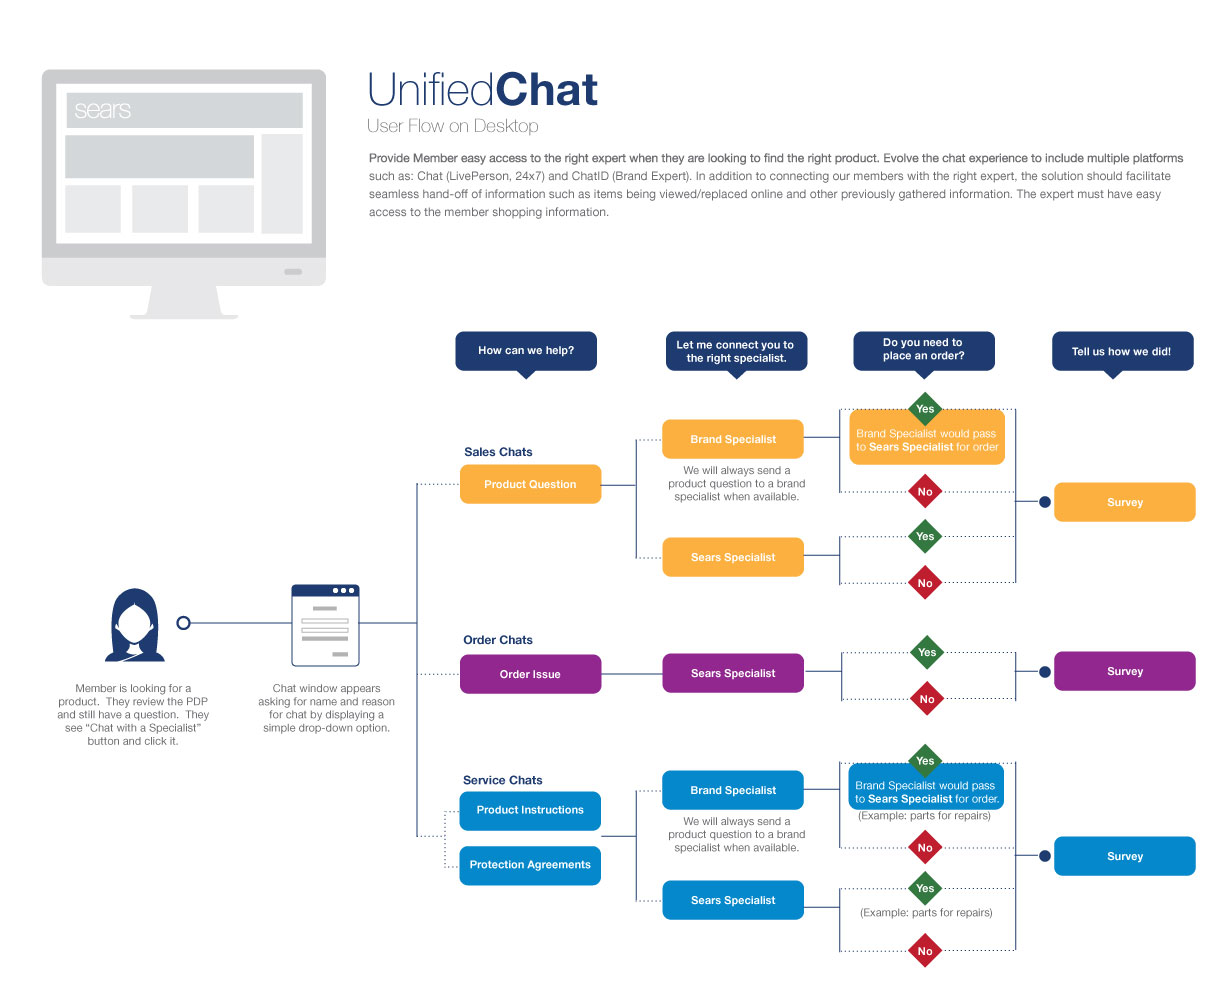 Unified_Chat_User_Flow_v4.jpg